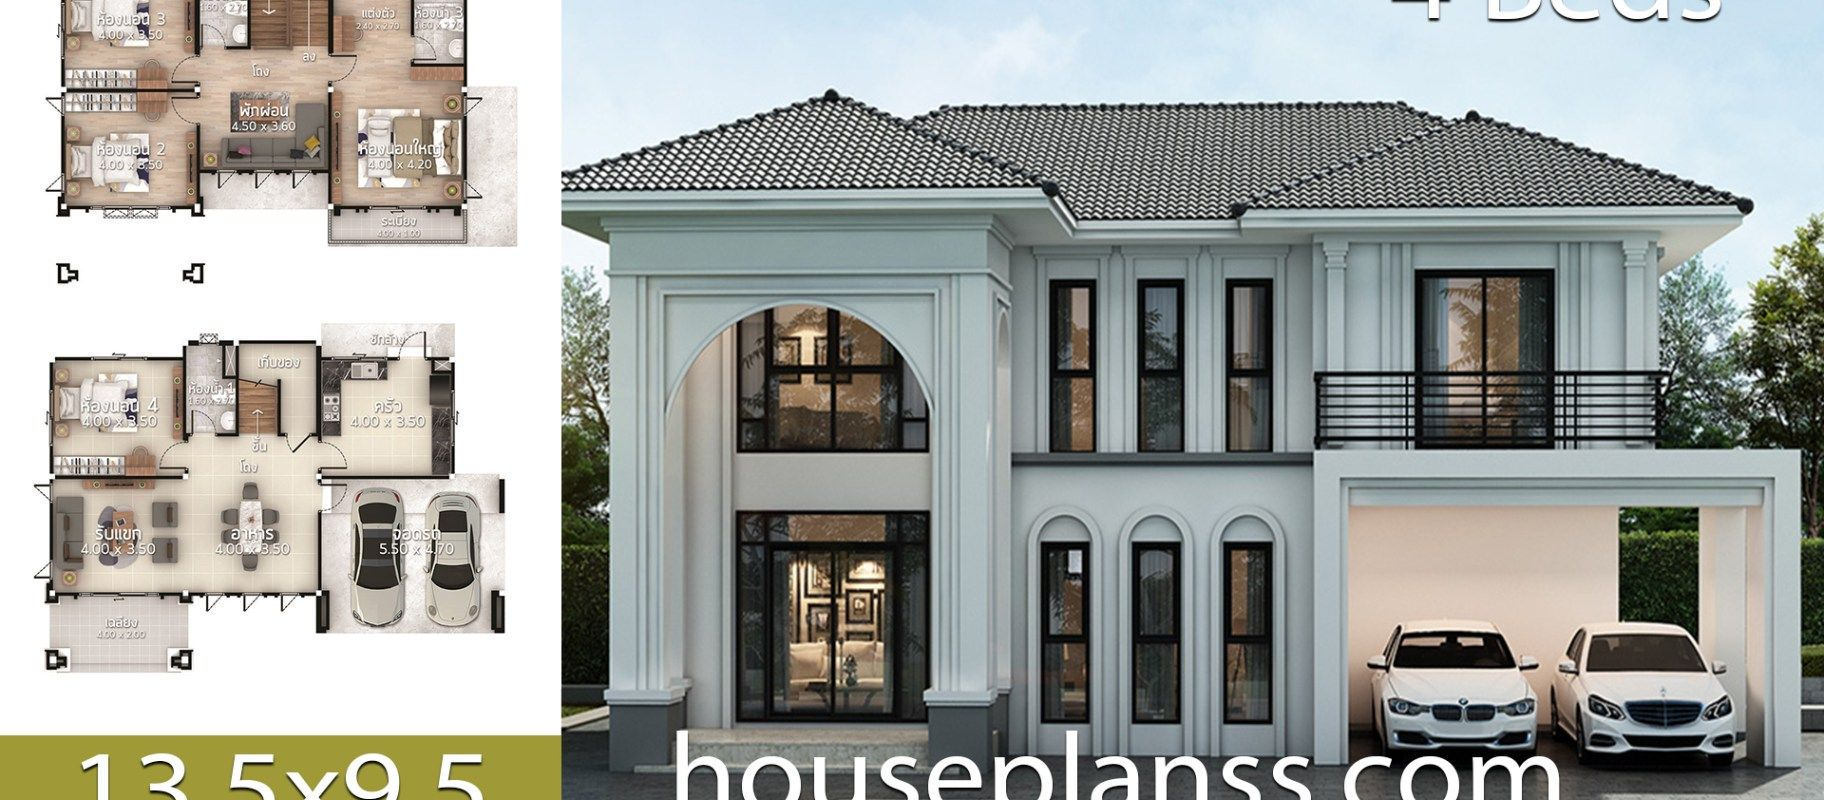 House Plans Design Idea 13 5x9 5 With 4 Bedrooms House Plans S Beautiful House Plans Home Design Plans Modern House Plans